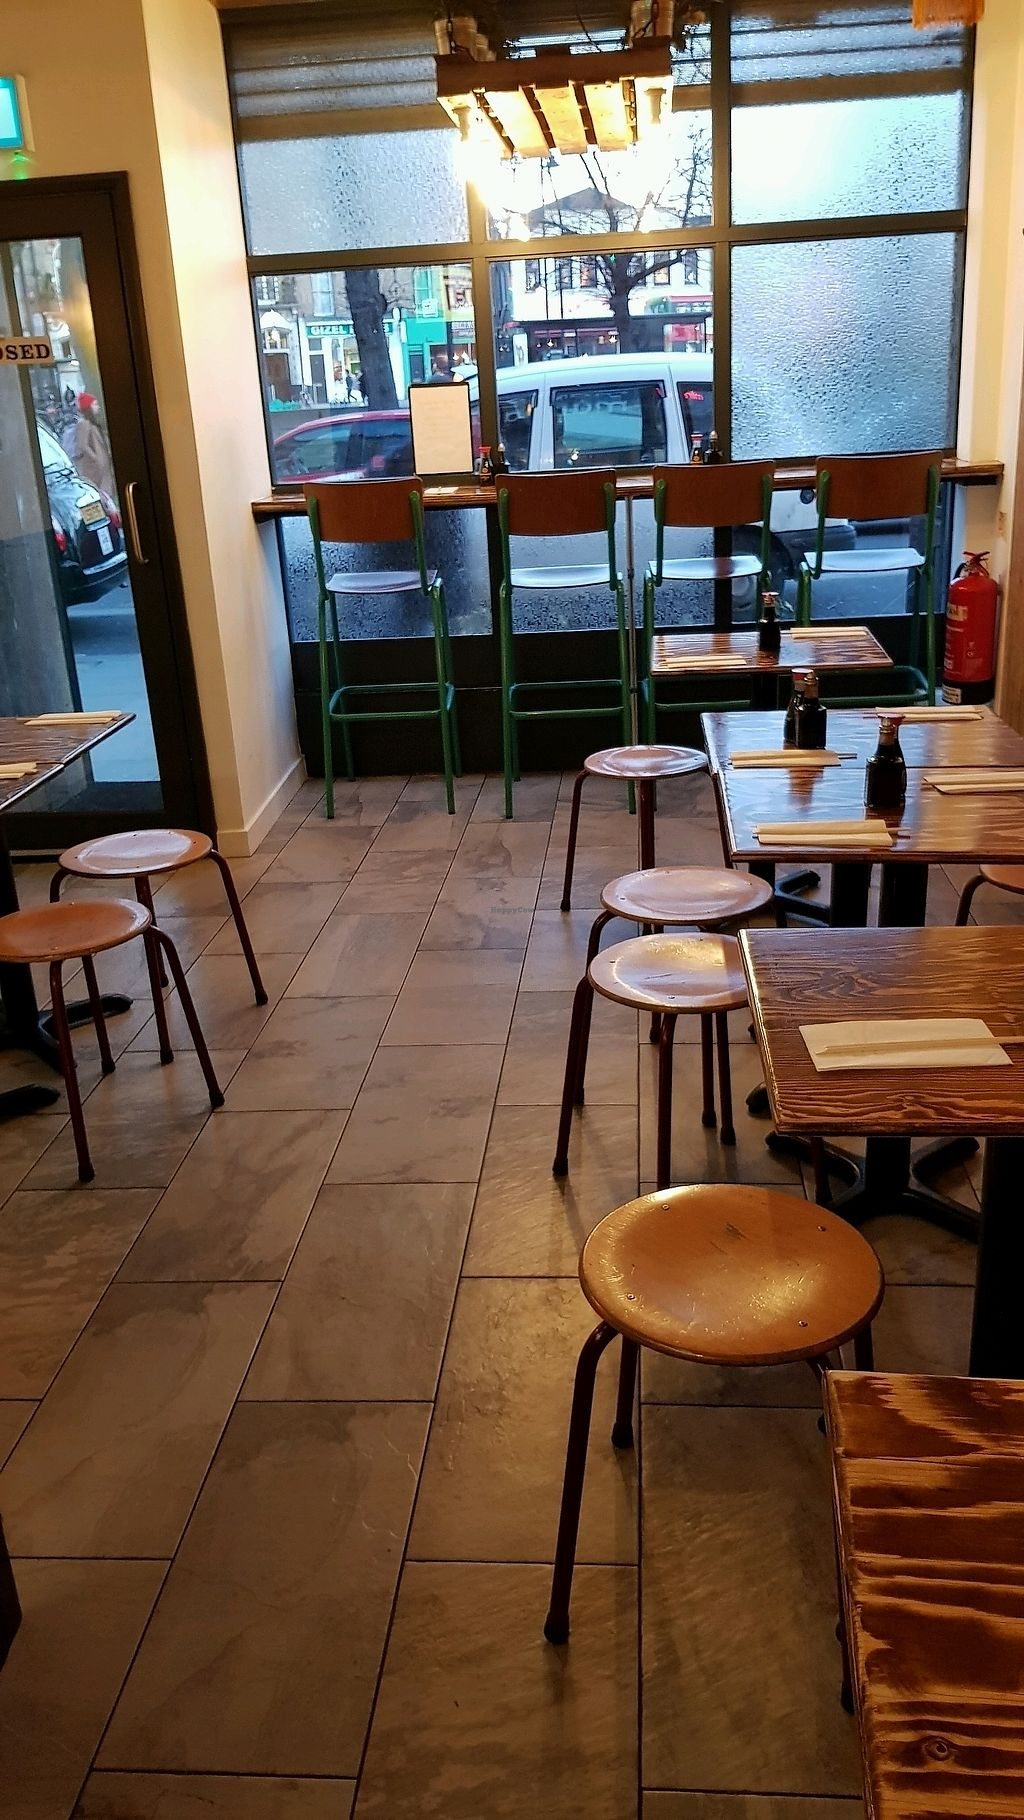 """Photo of mamalan - Clapham  by <a href=""""/members/profile/jollypig"""">jollypig</a> <br/>It has tables and chairs <br/> March 19, 2018  - <a href='/contact/abuse/image/88268/373069'>Report</a>"""